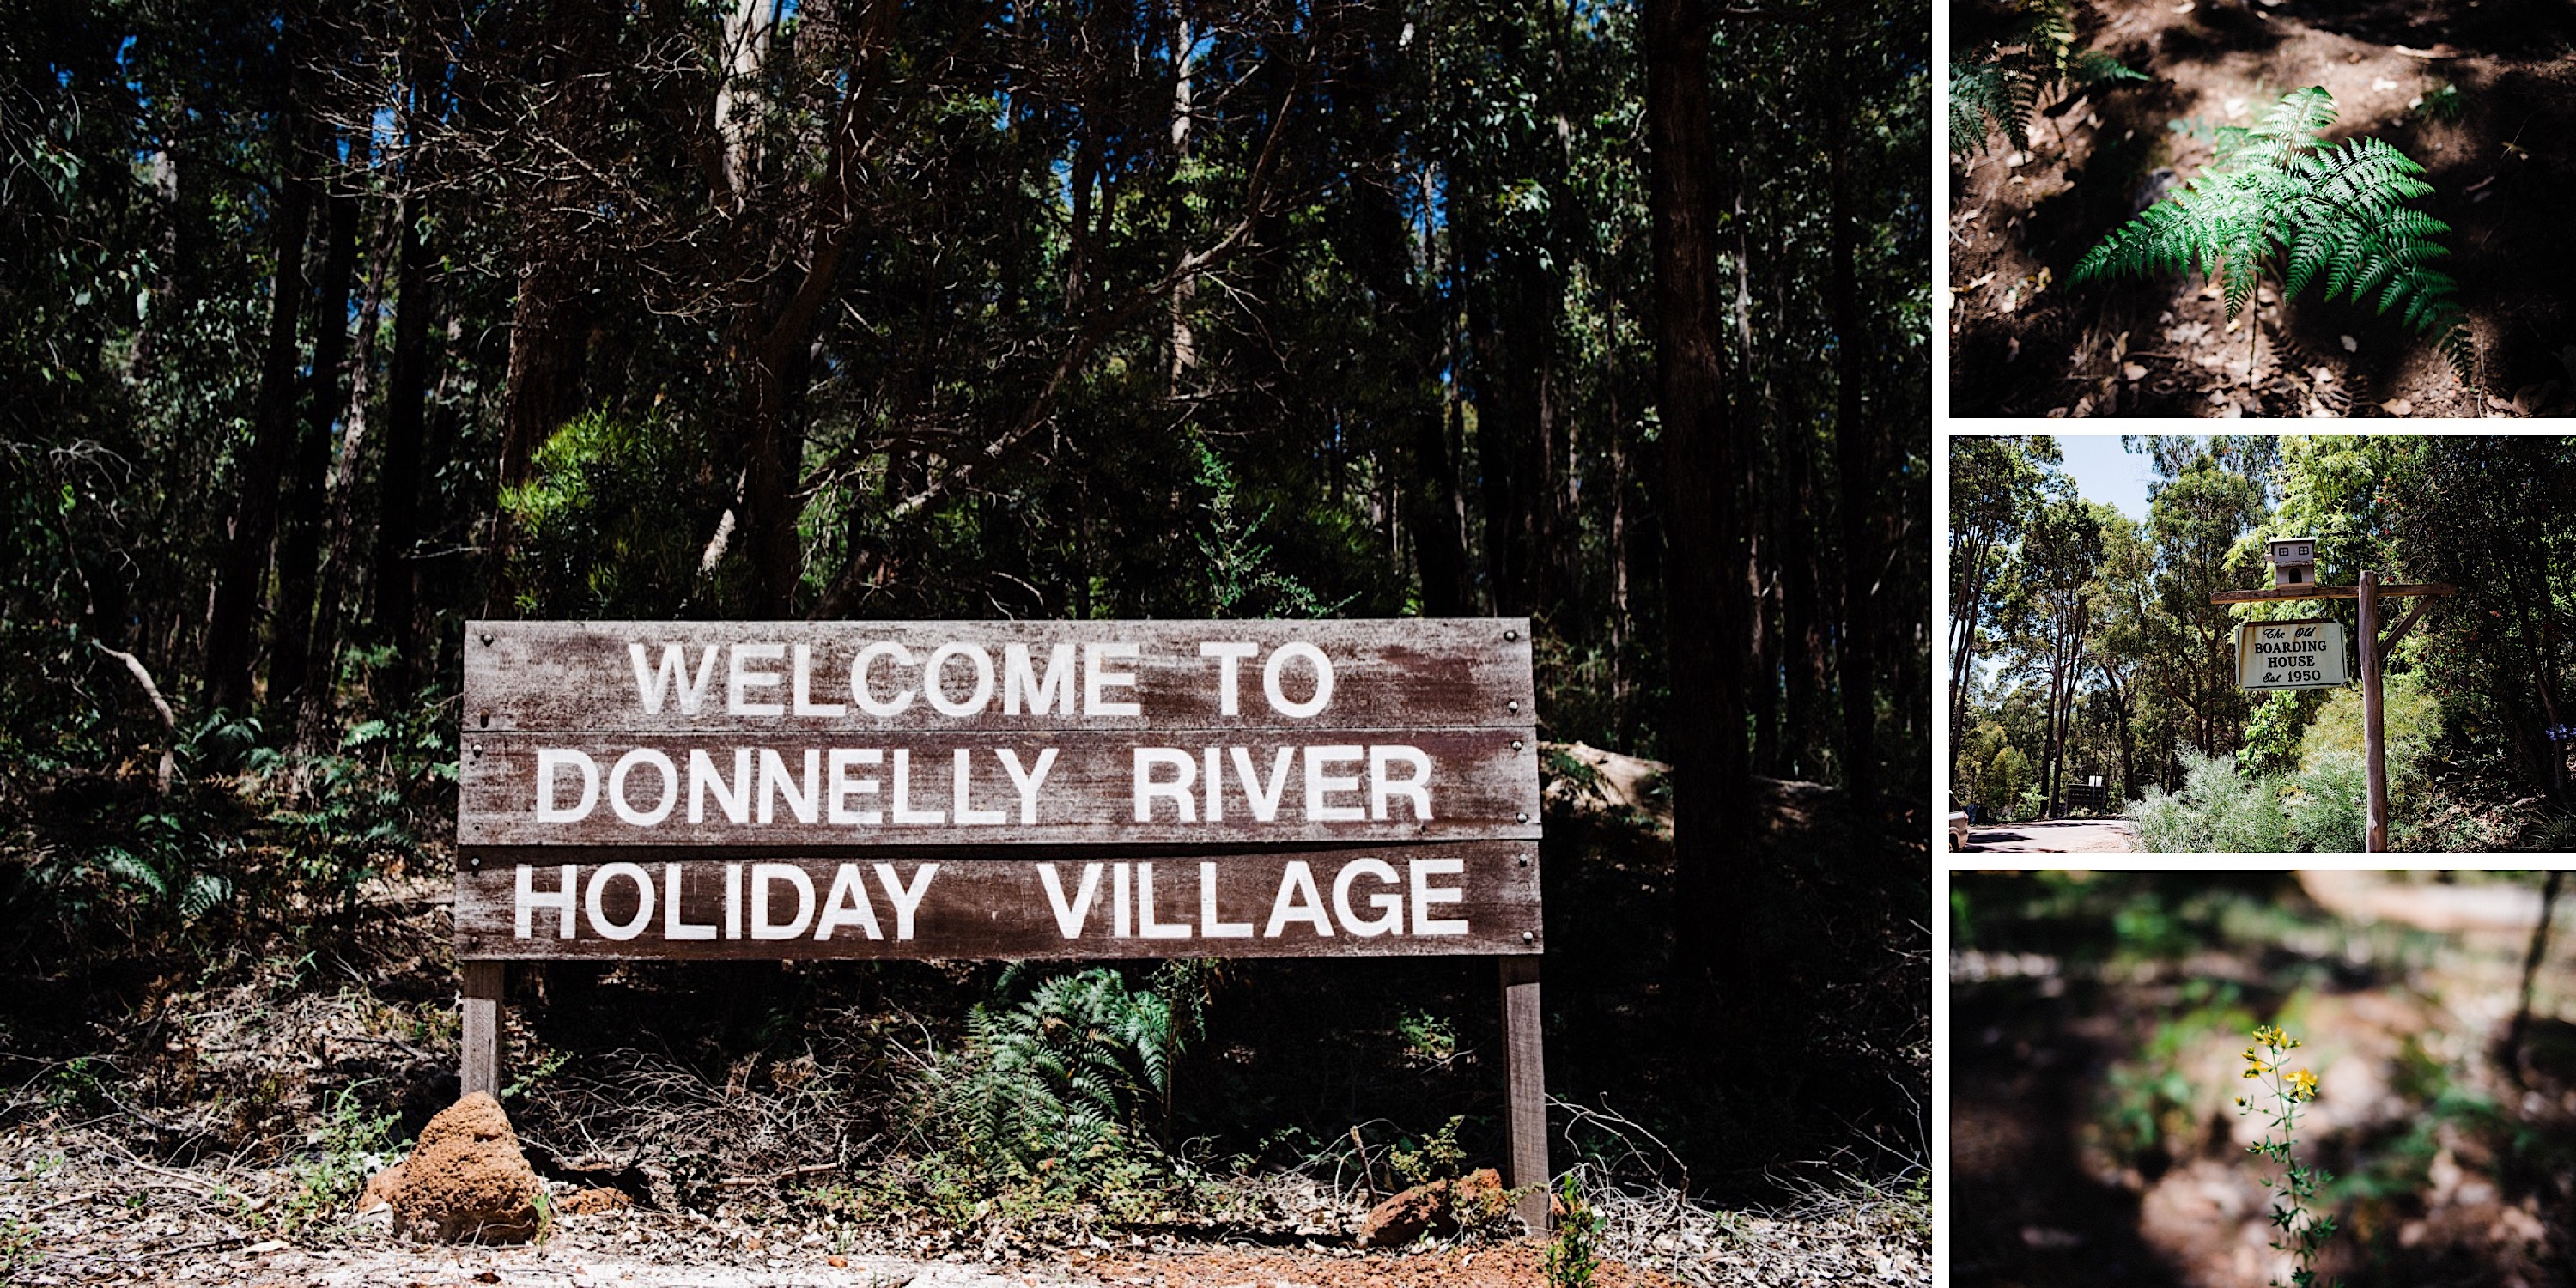 A collage of images from Donnelly River Village in Bridgetown, Western Australia.